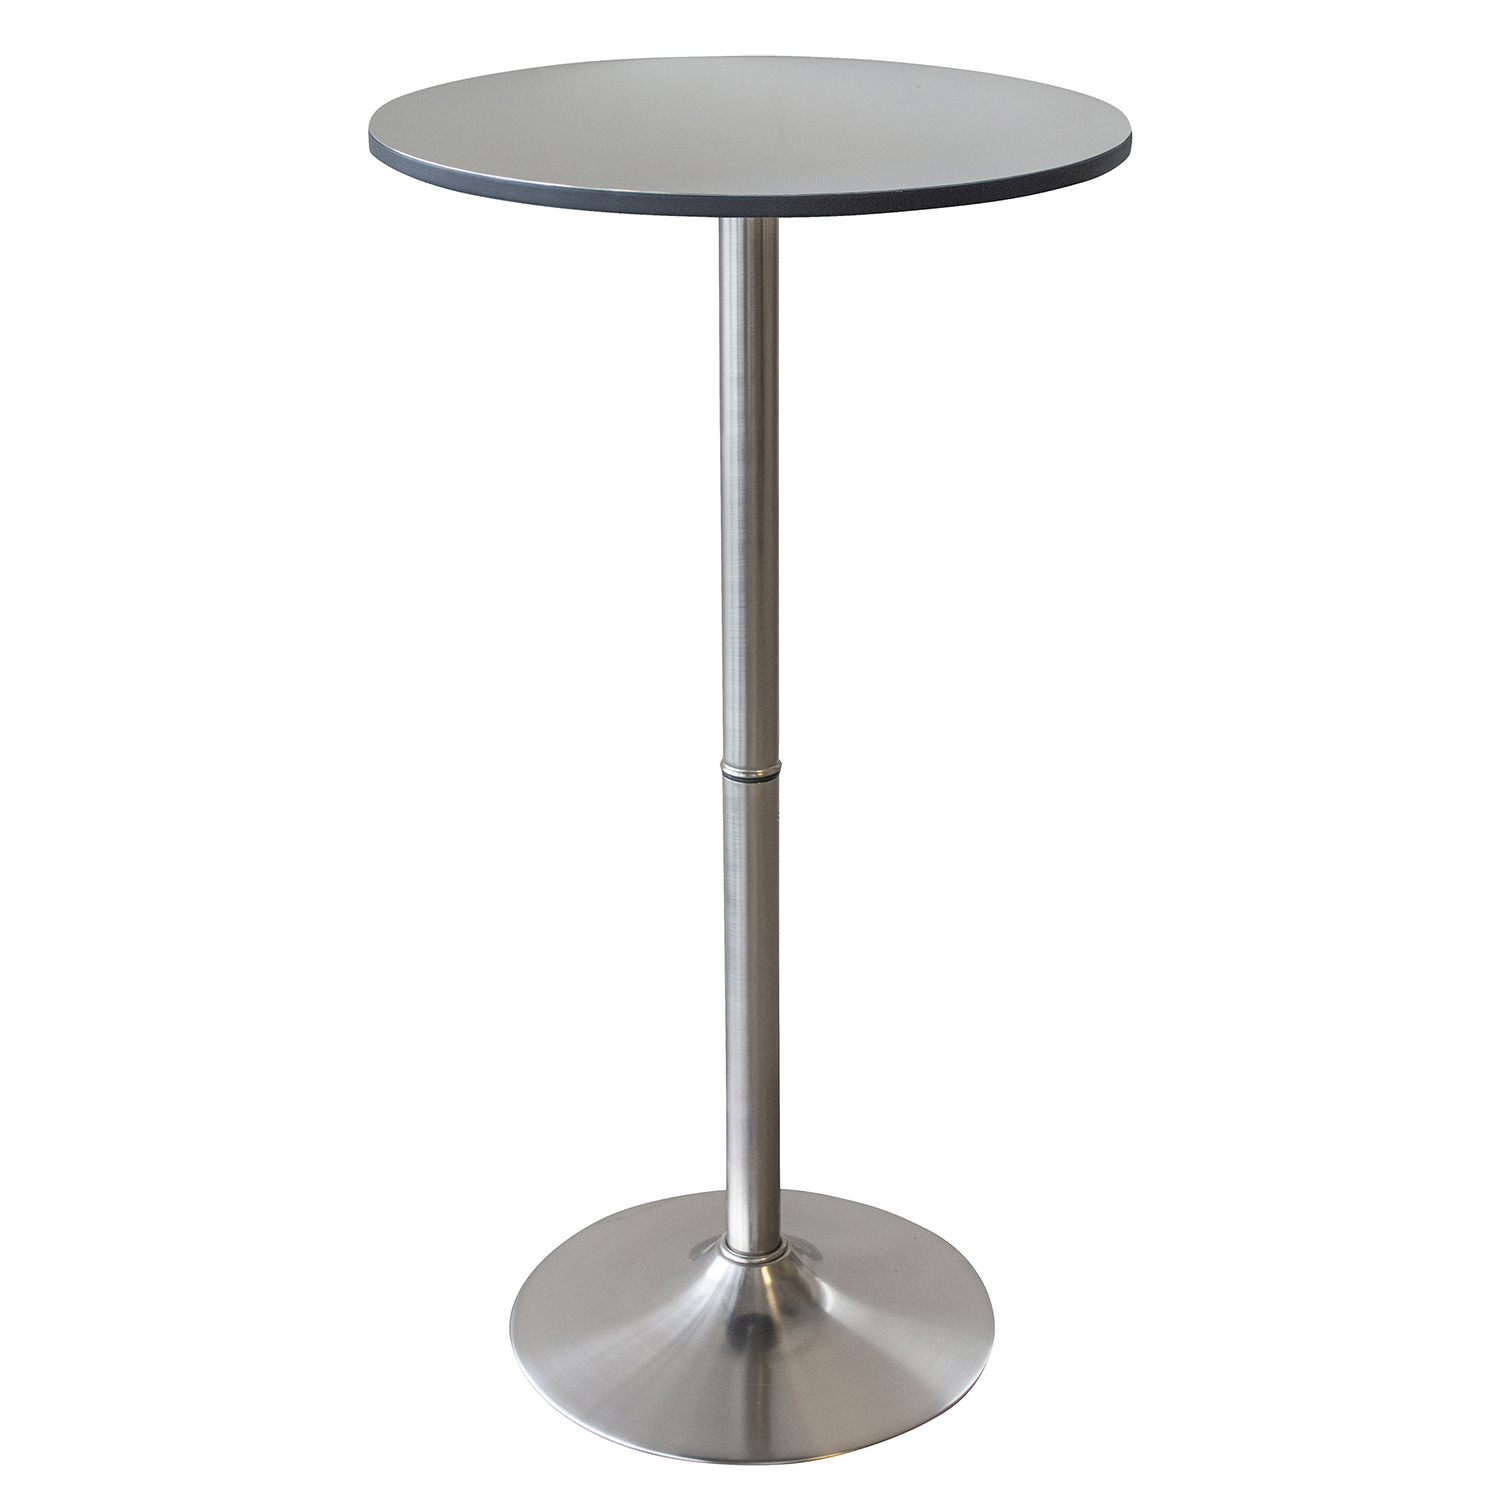 SSBTB Stainless Steel Bar Table